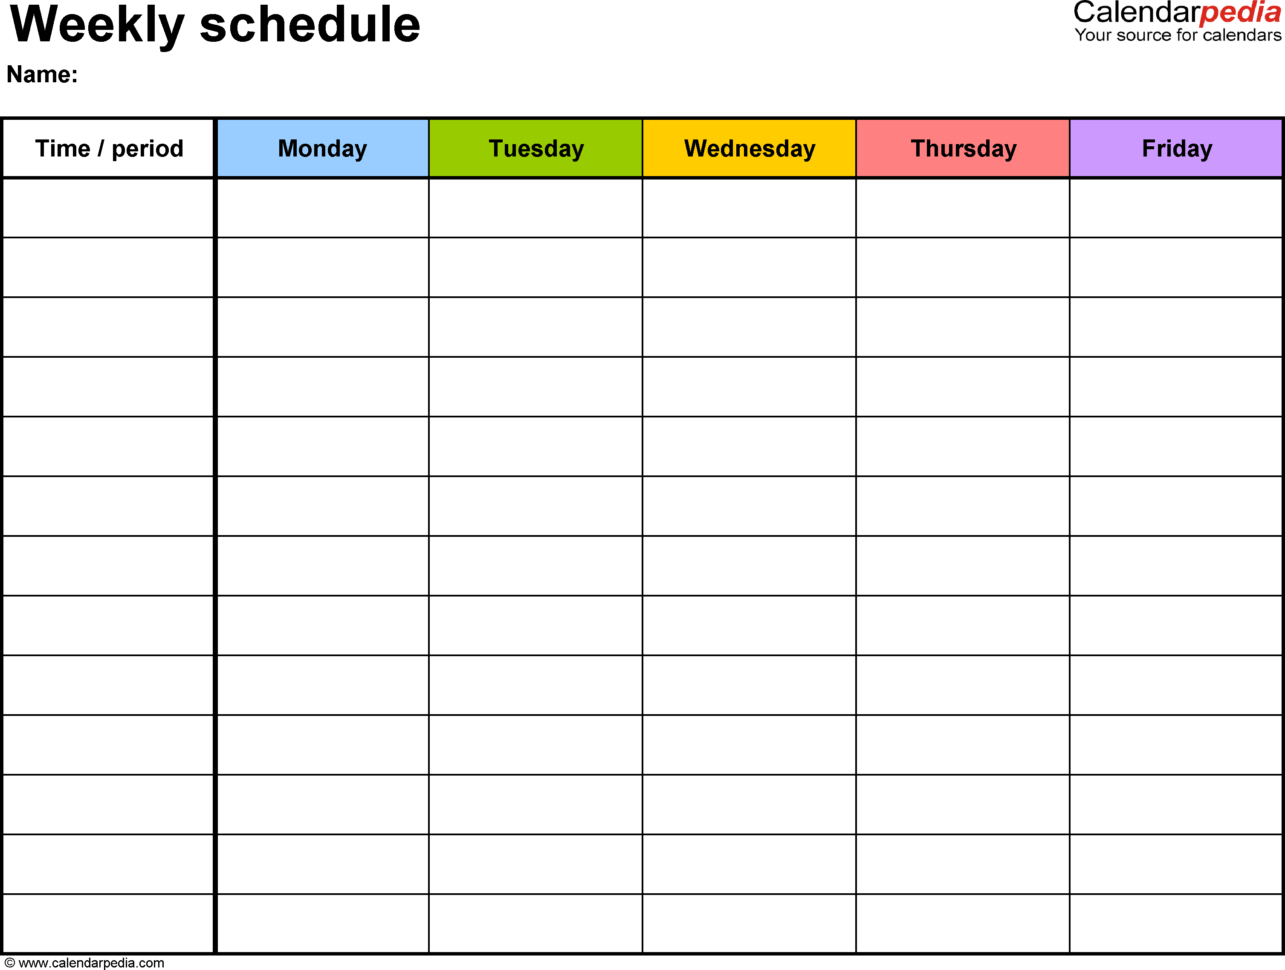 Roster Spreadsheet Template Free For Free Weekly Schedule